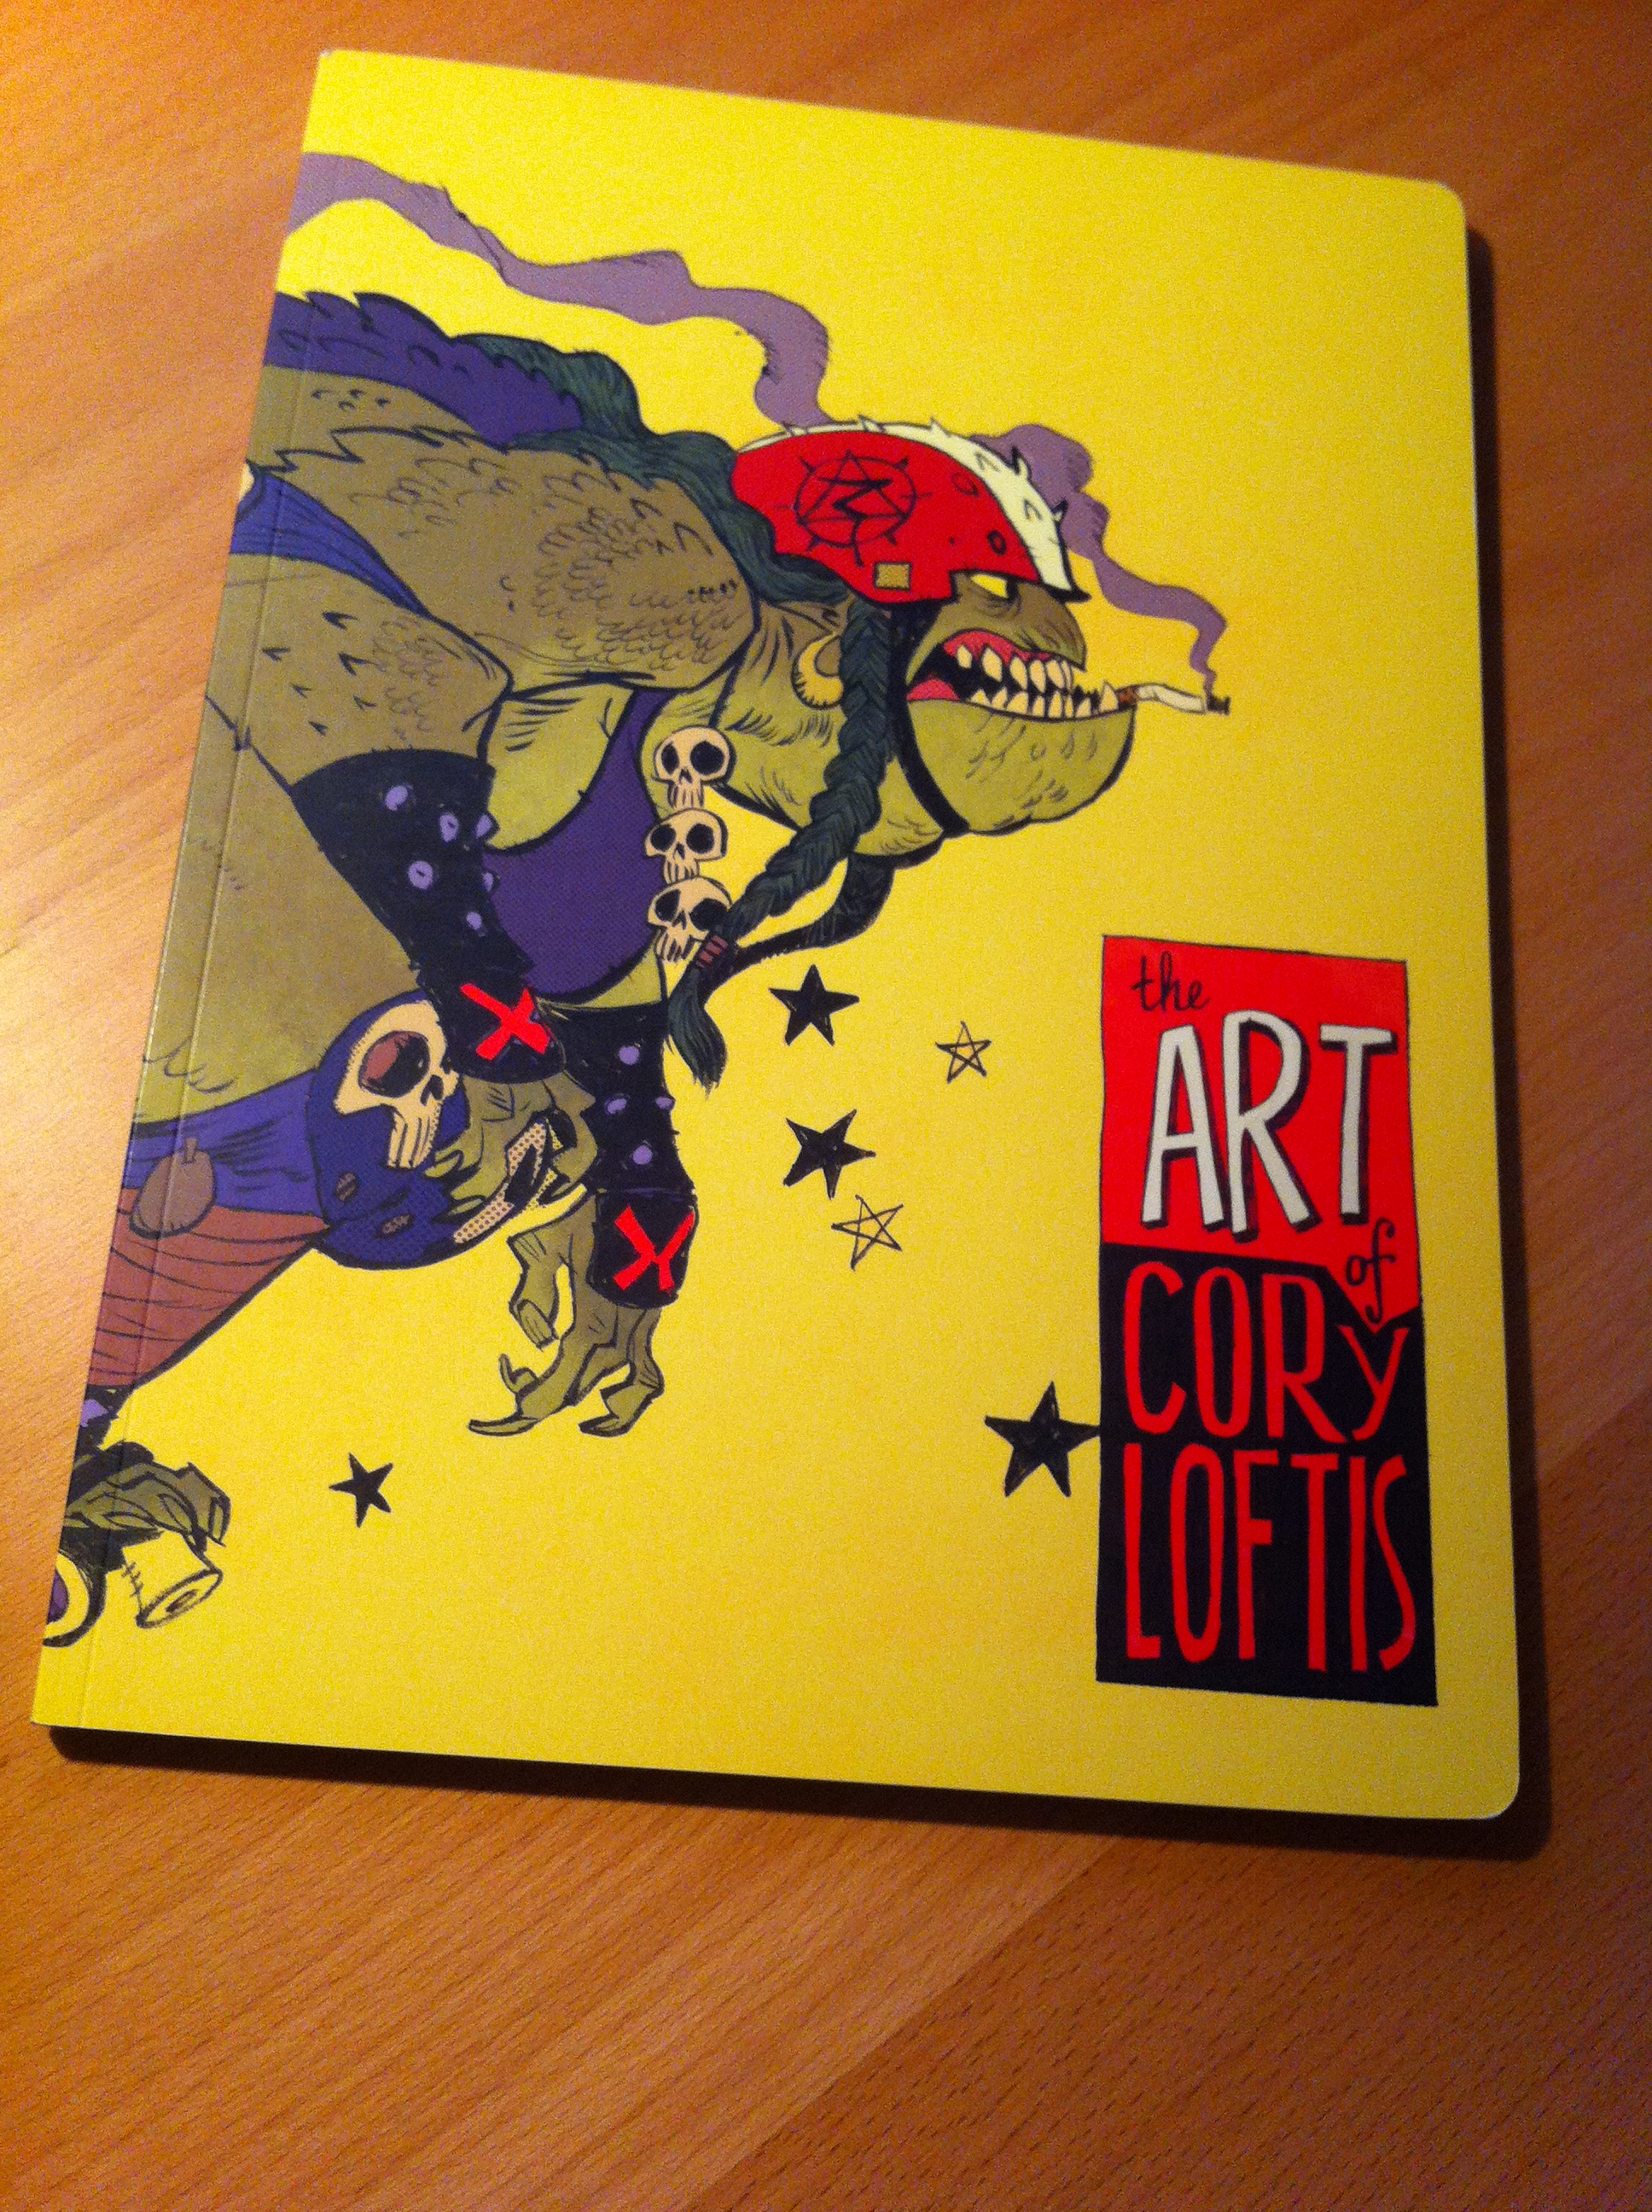 My new favorite book - The Art of Cory Loftis